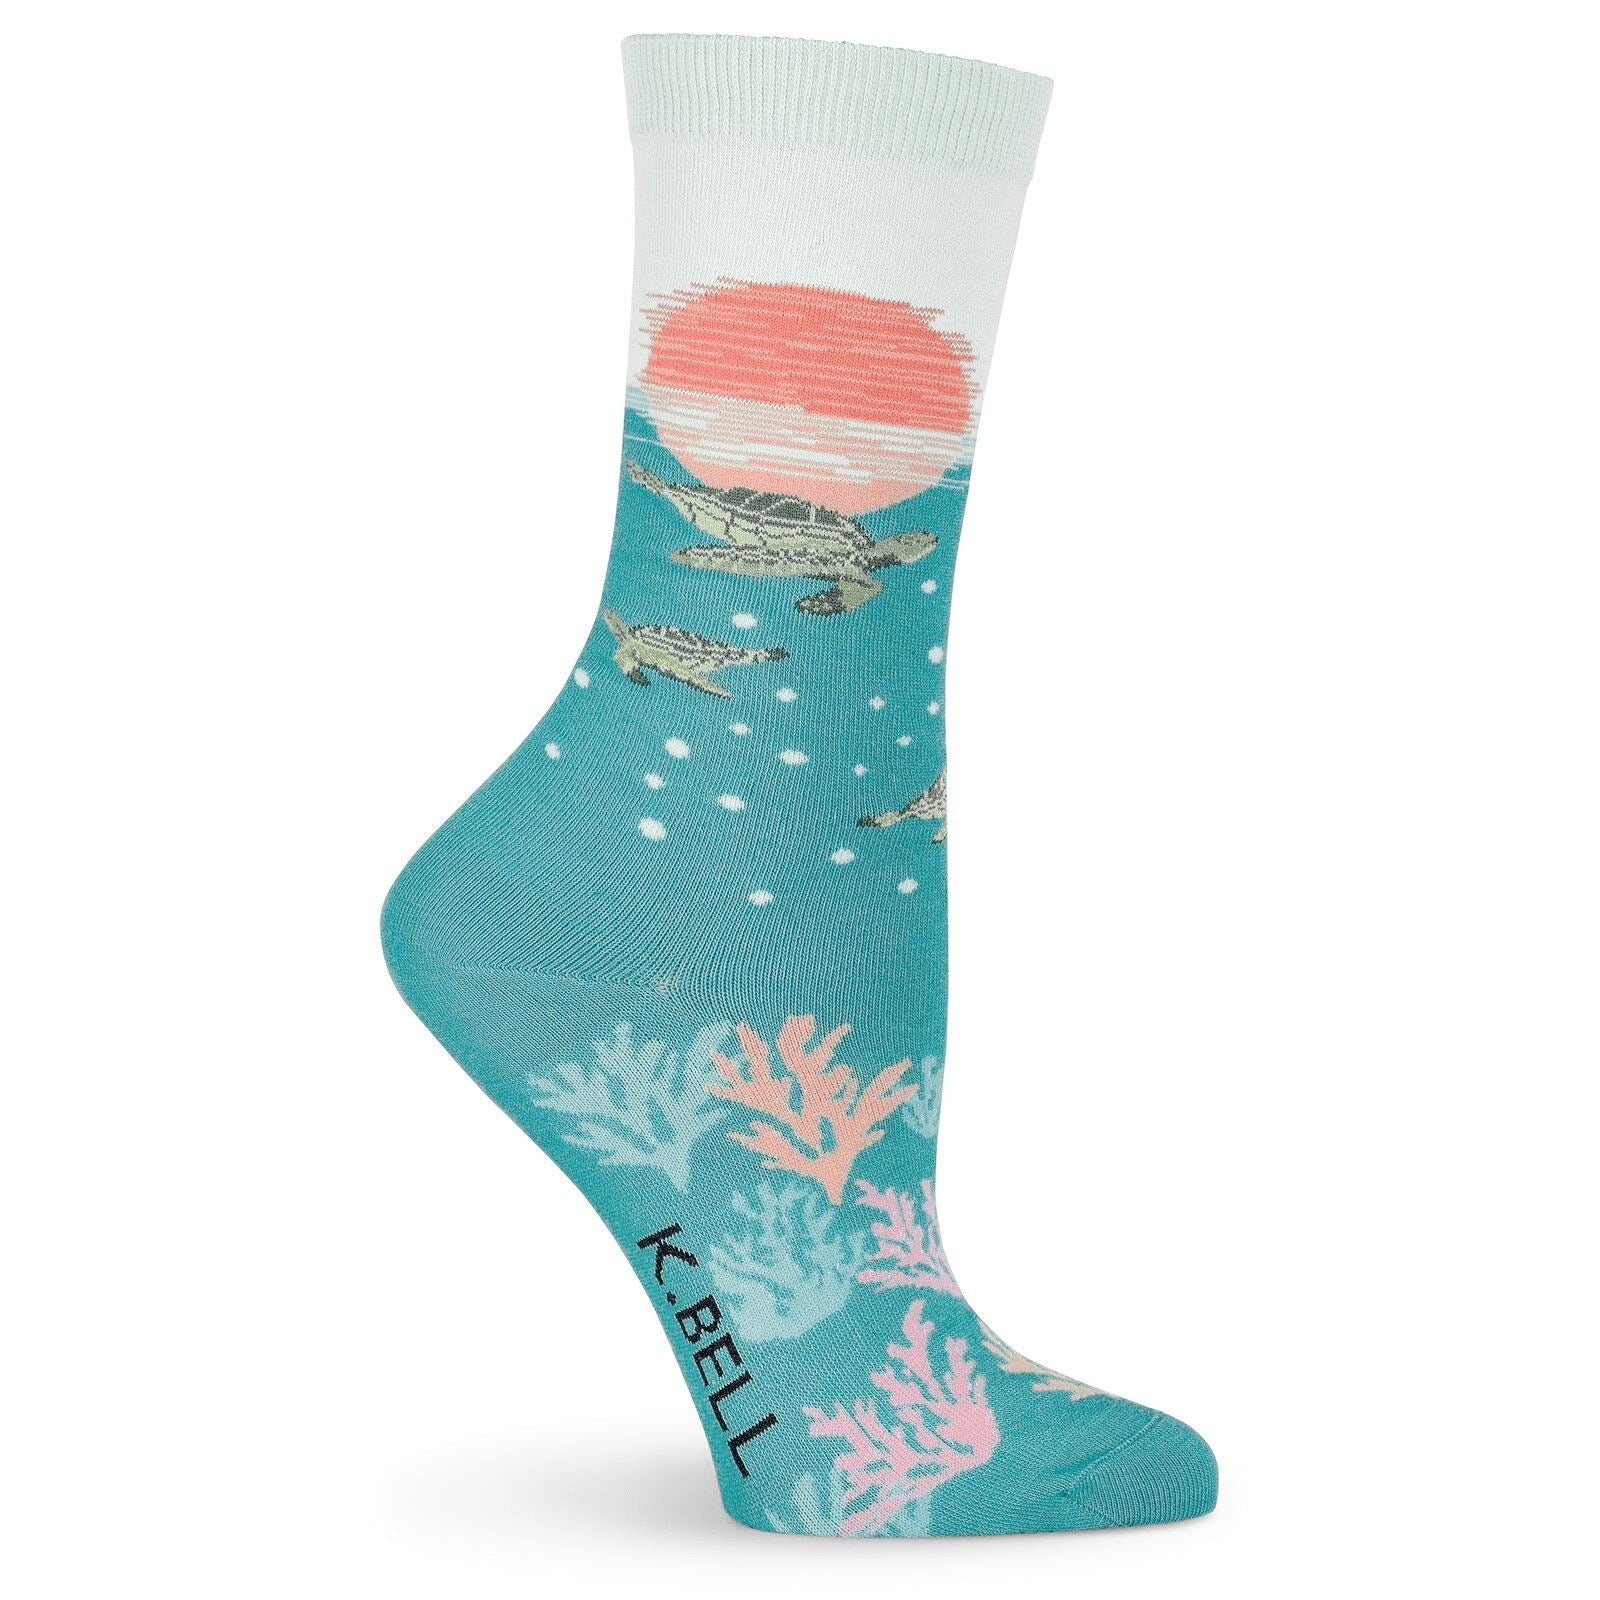 K. Bell - Sea Turtles Crew Socks | Women's - Knock Your Socks Off